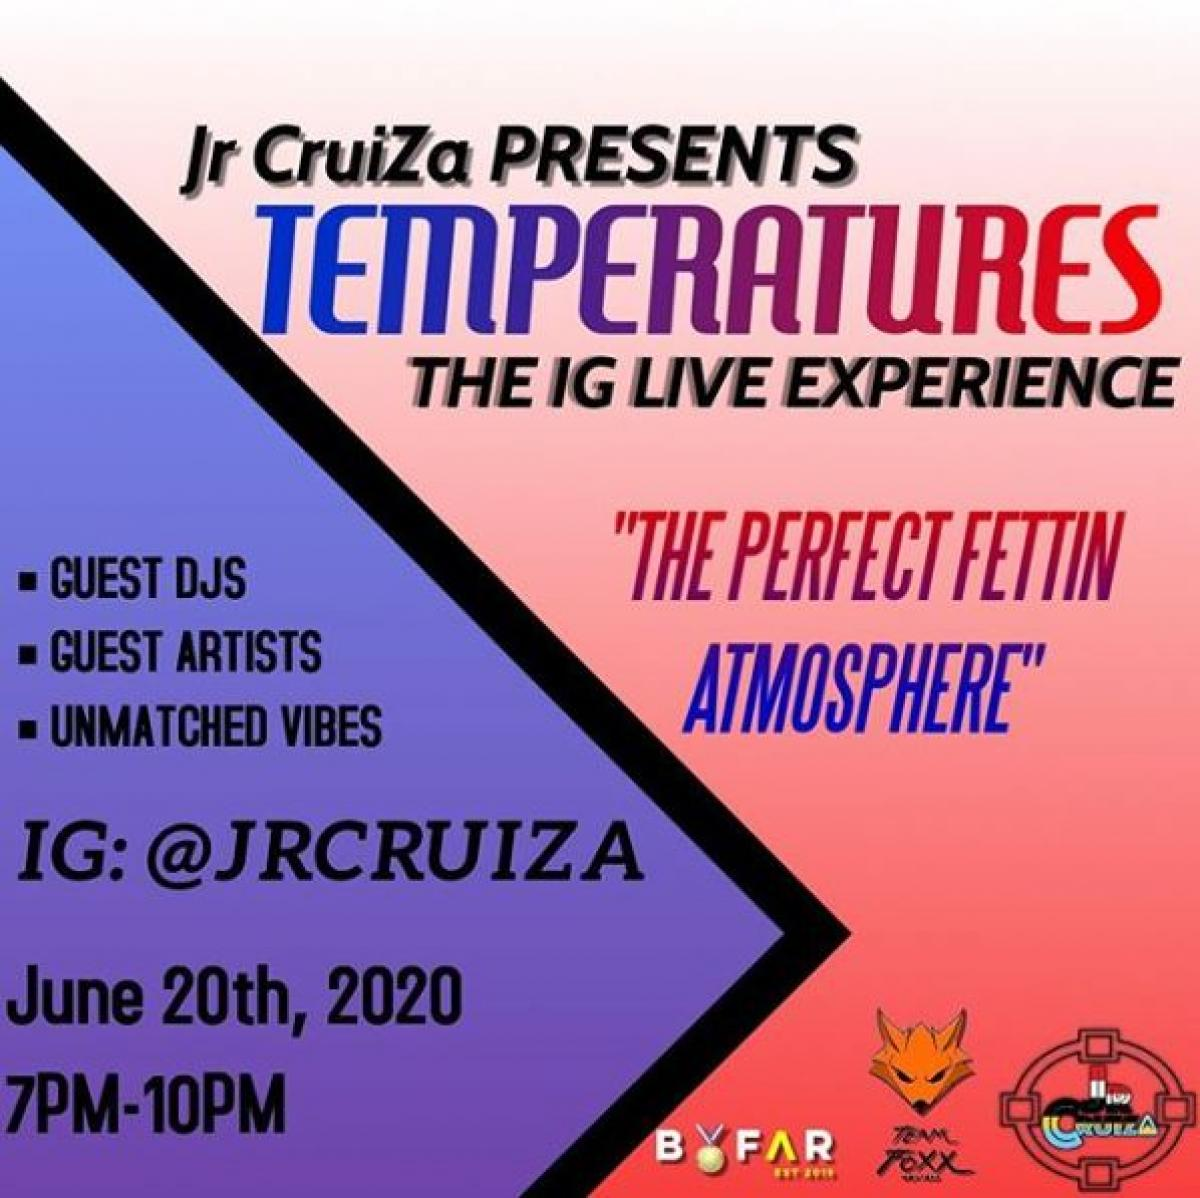 Temperatures flyer or graphic.